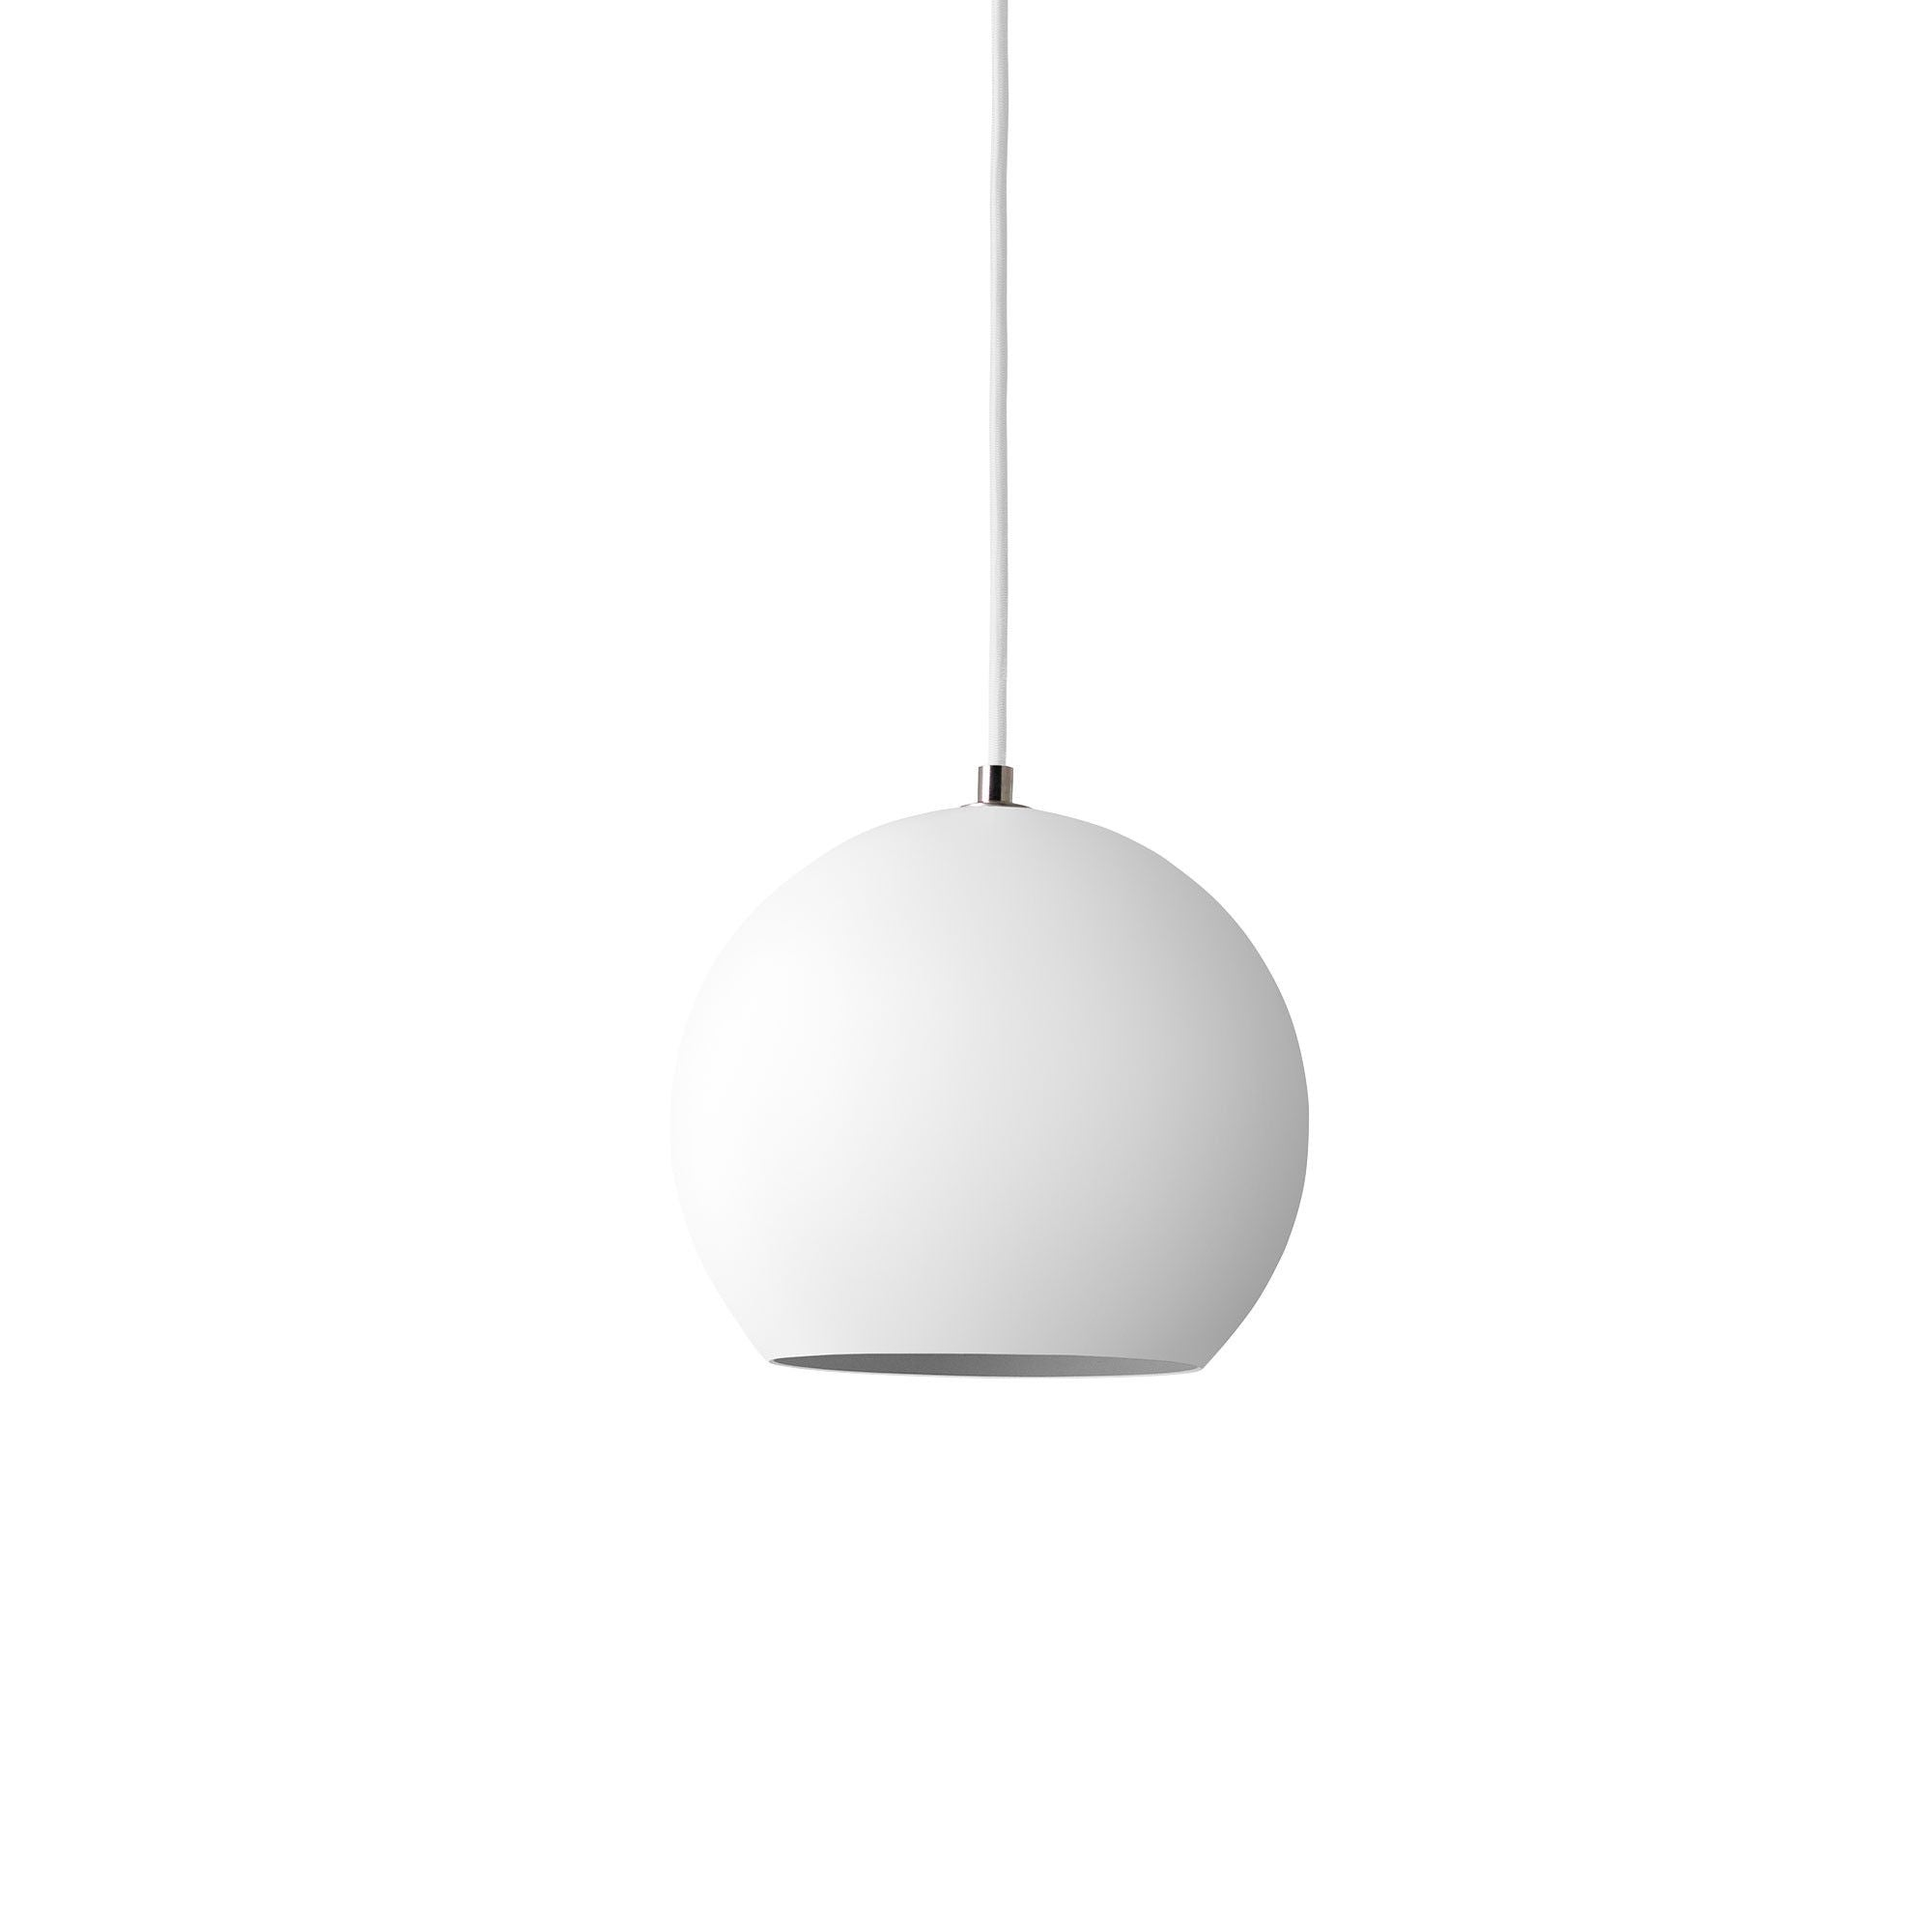 &Tradition VP6 Topan pendant lamp, matt white